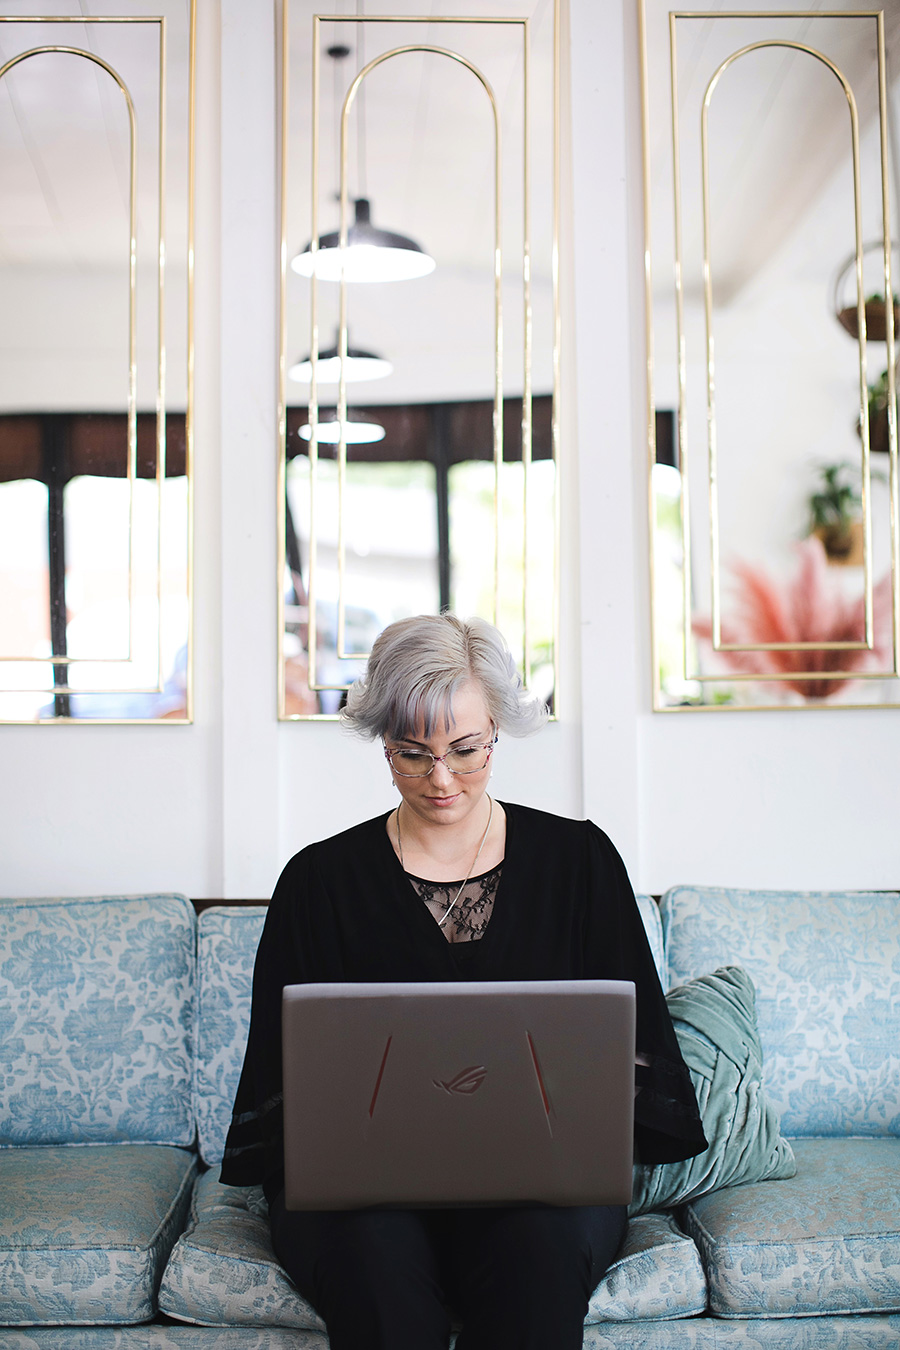 Online EMDR therapist sits on a couch and types on her laptop.